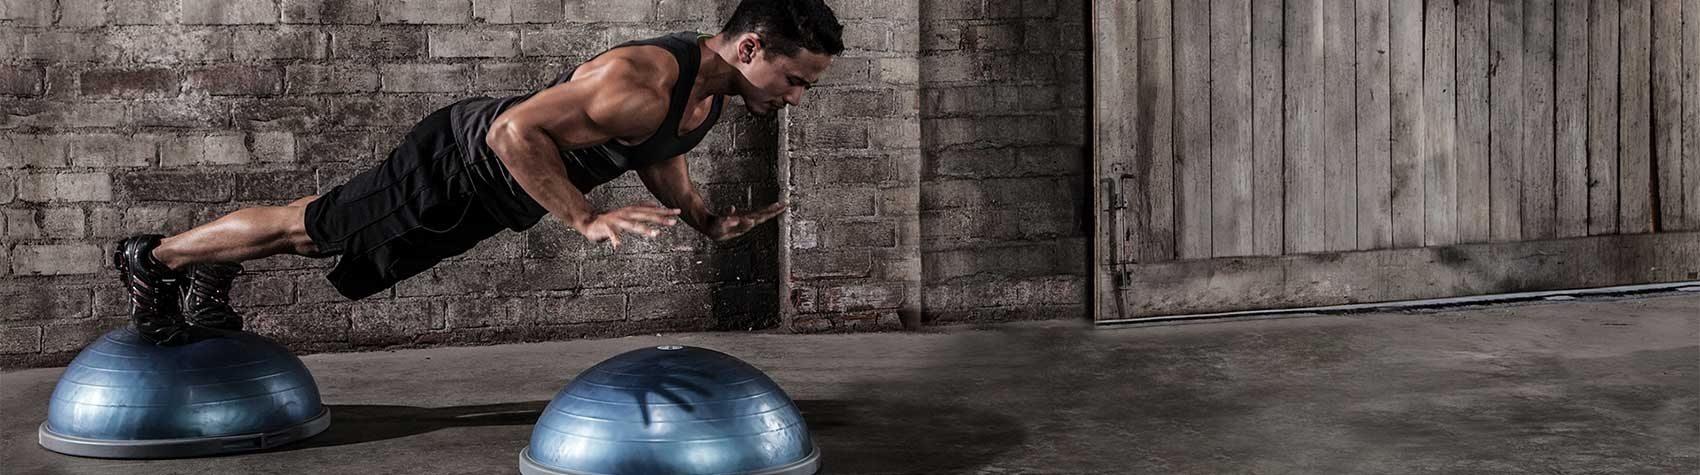 BOSU Home Balance Trainer, Pro Trainer and many more